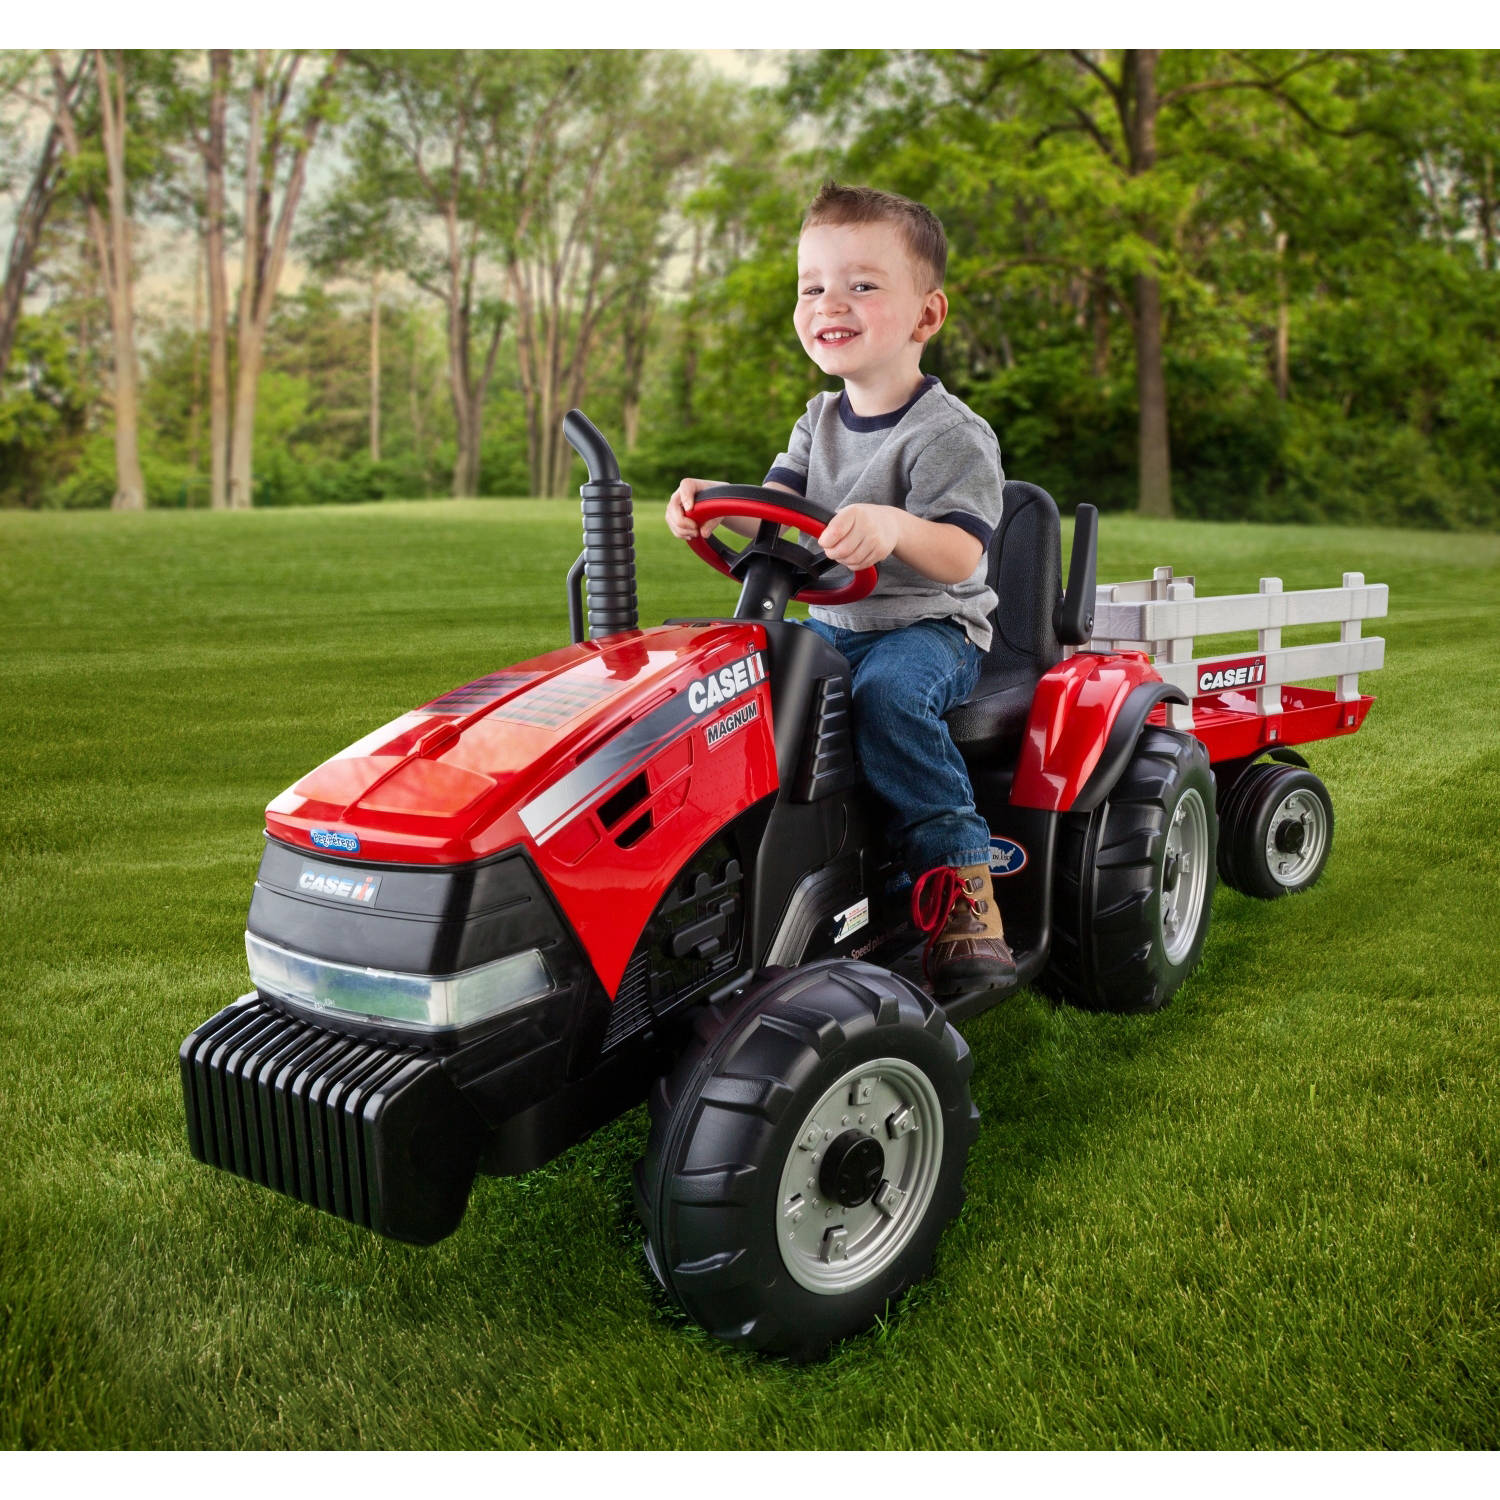 Peg Perego Case IH Magnum Tractor and Trailer 12-Volt Battery-Powered Ride-On by Generic